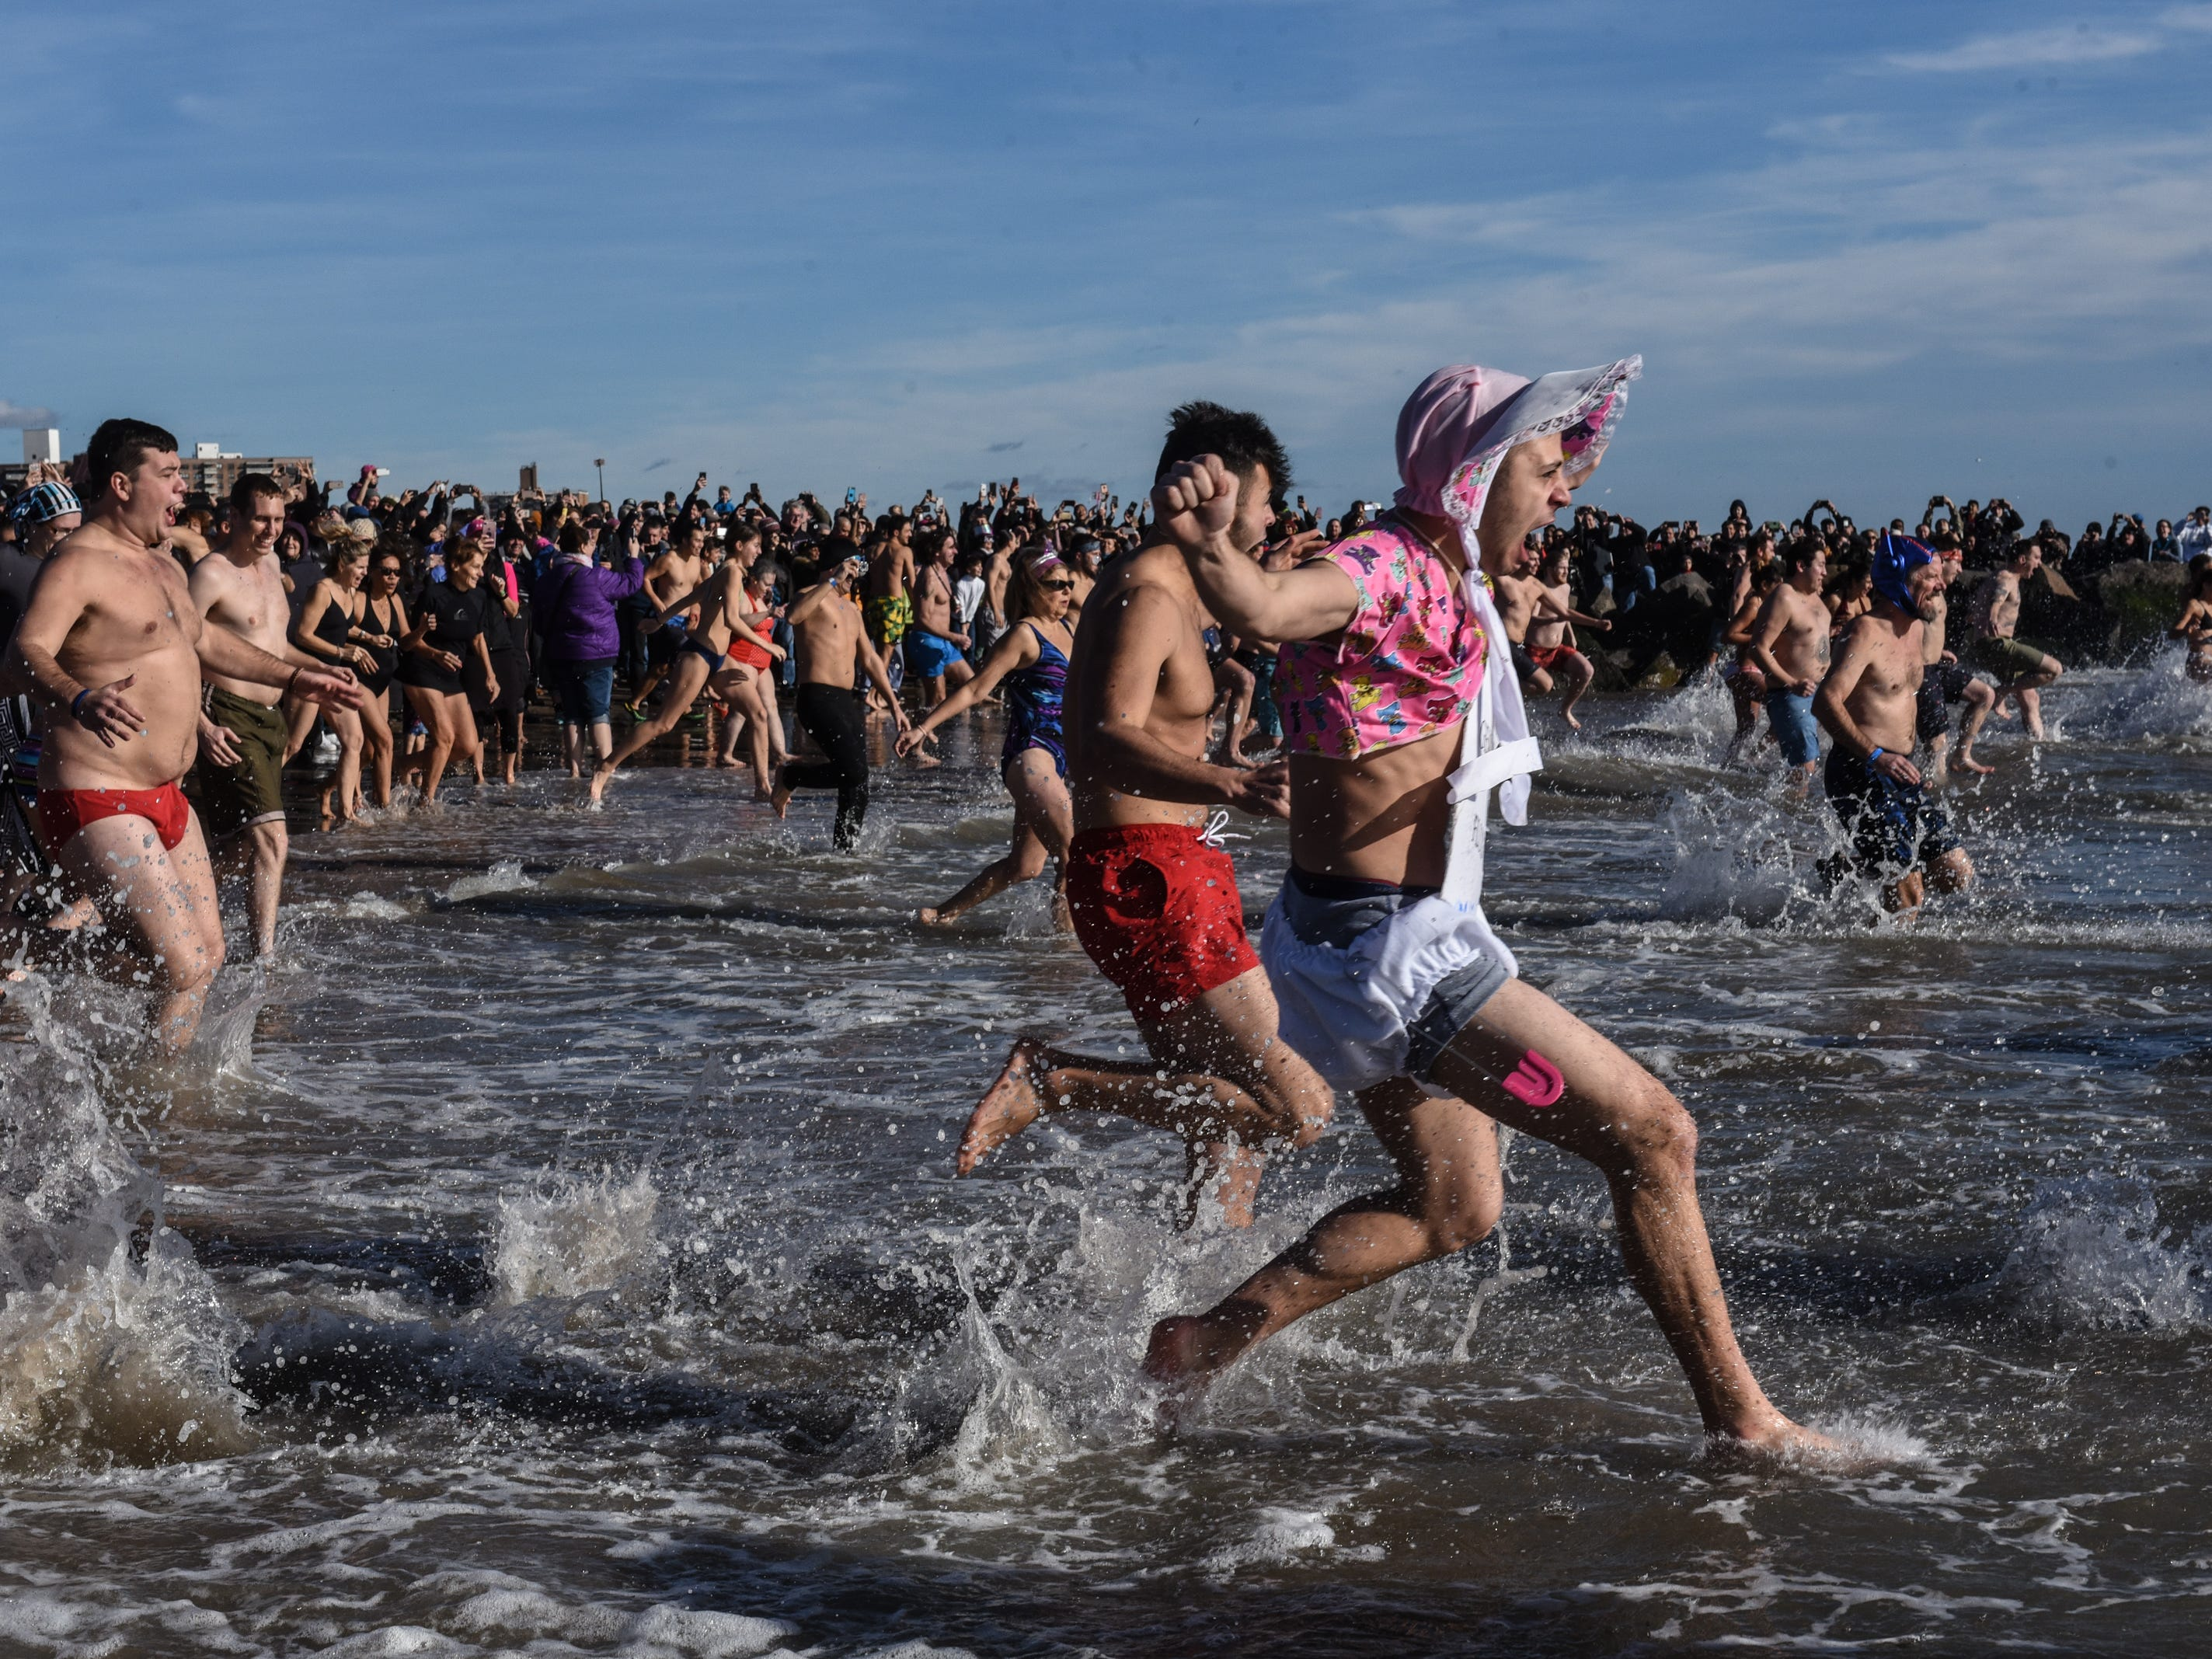 People jump into the Atlantic Ocean during the annual Polar Bear Plunge on New Year's Day in Coney Island on in the Brooklyn borough of New York City.